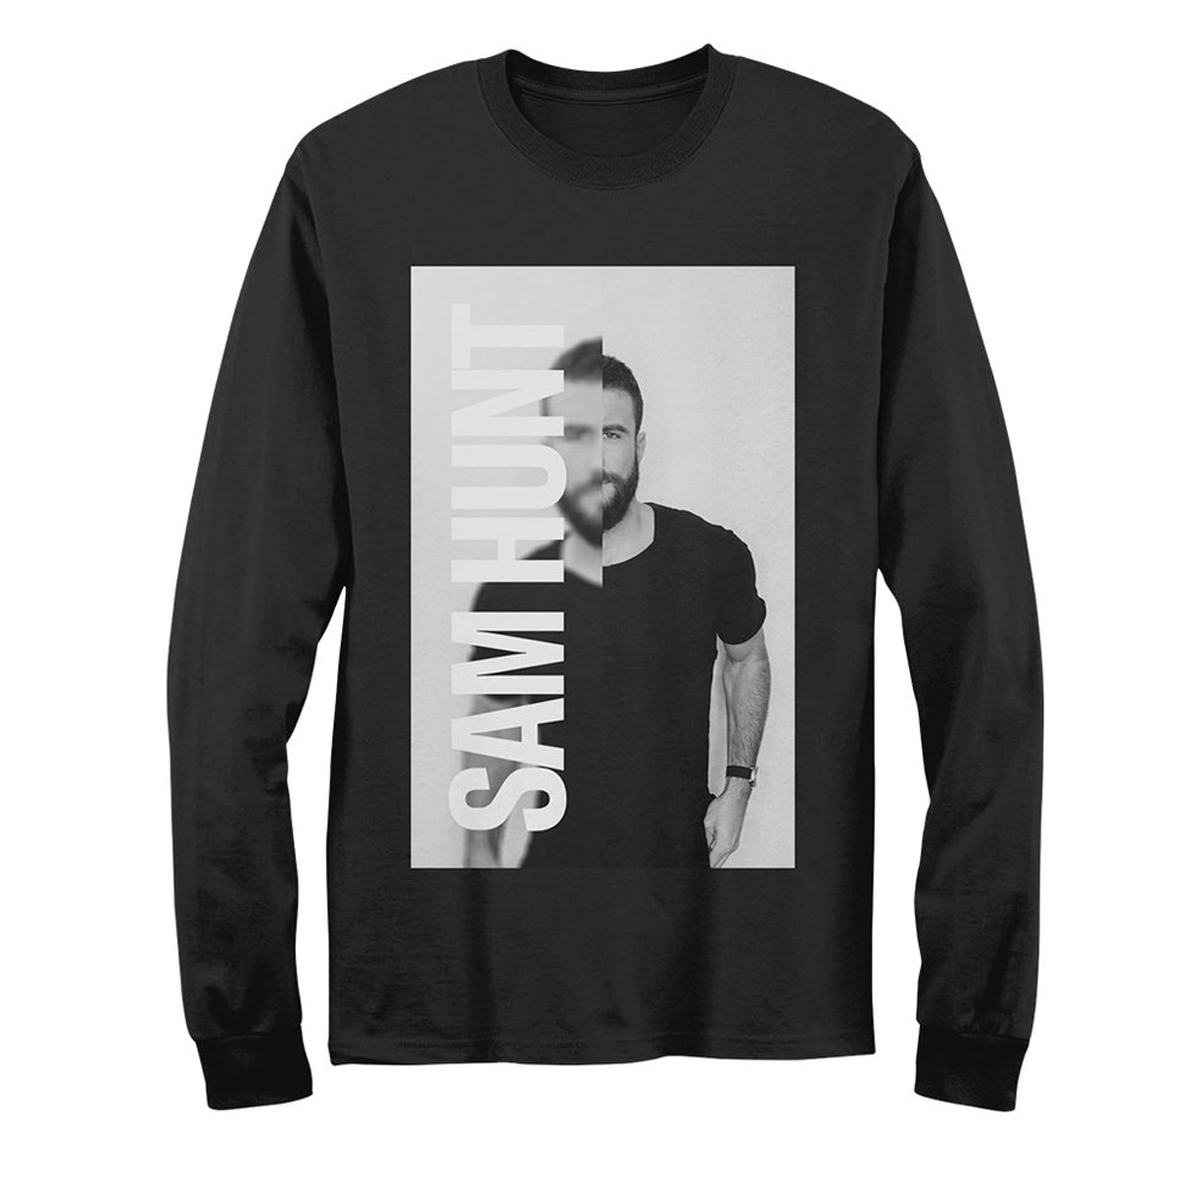 SH Long Sleeve Photo T